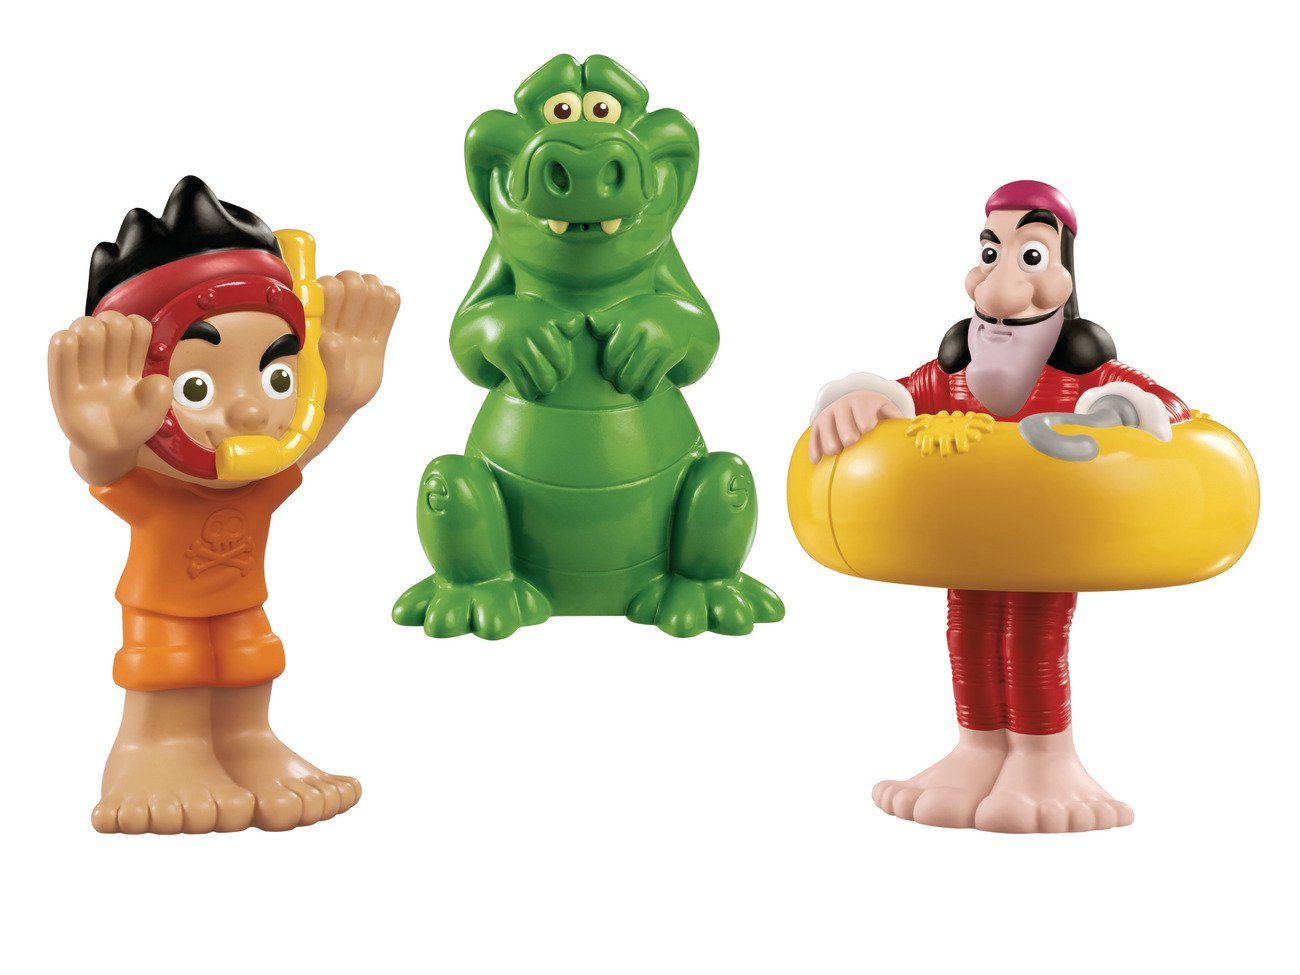 Fisher-Price Disney's Jake and The Never Land Pirates: Jake Bath Squirters All characters have squirting action Fun in and out of the tub! Includes Jake, Captain Hook and Croc squirting figures